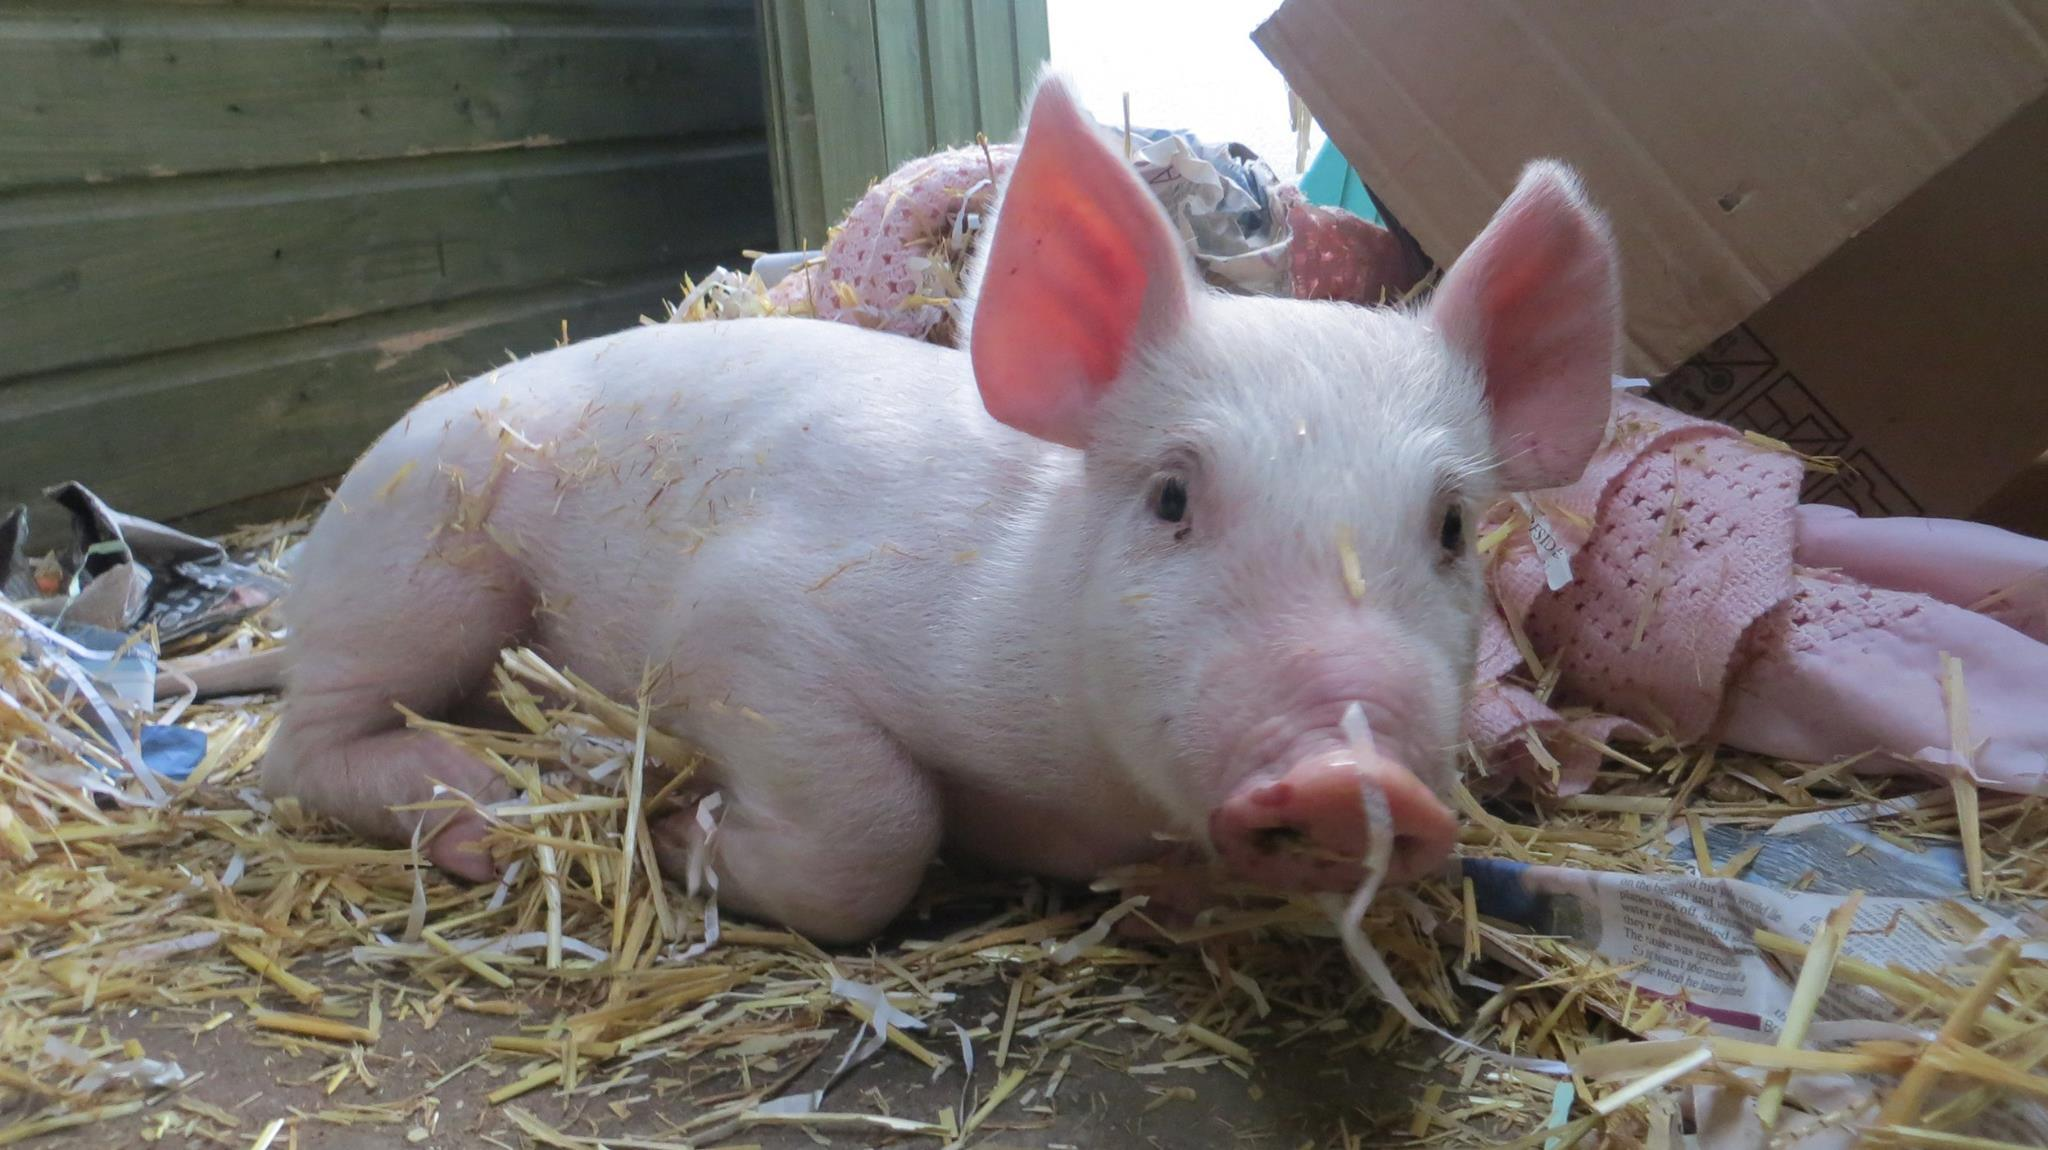 Scottish SPCA chiefs now hope to find a forever home for the piglet.